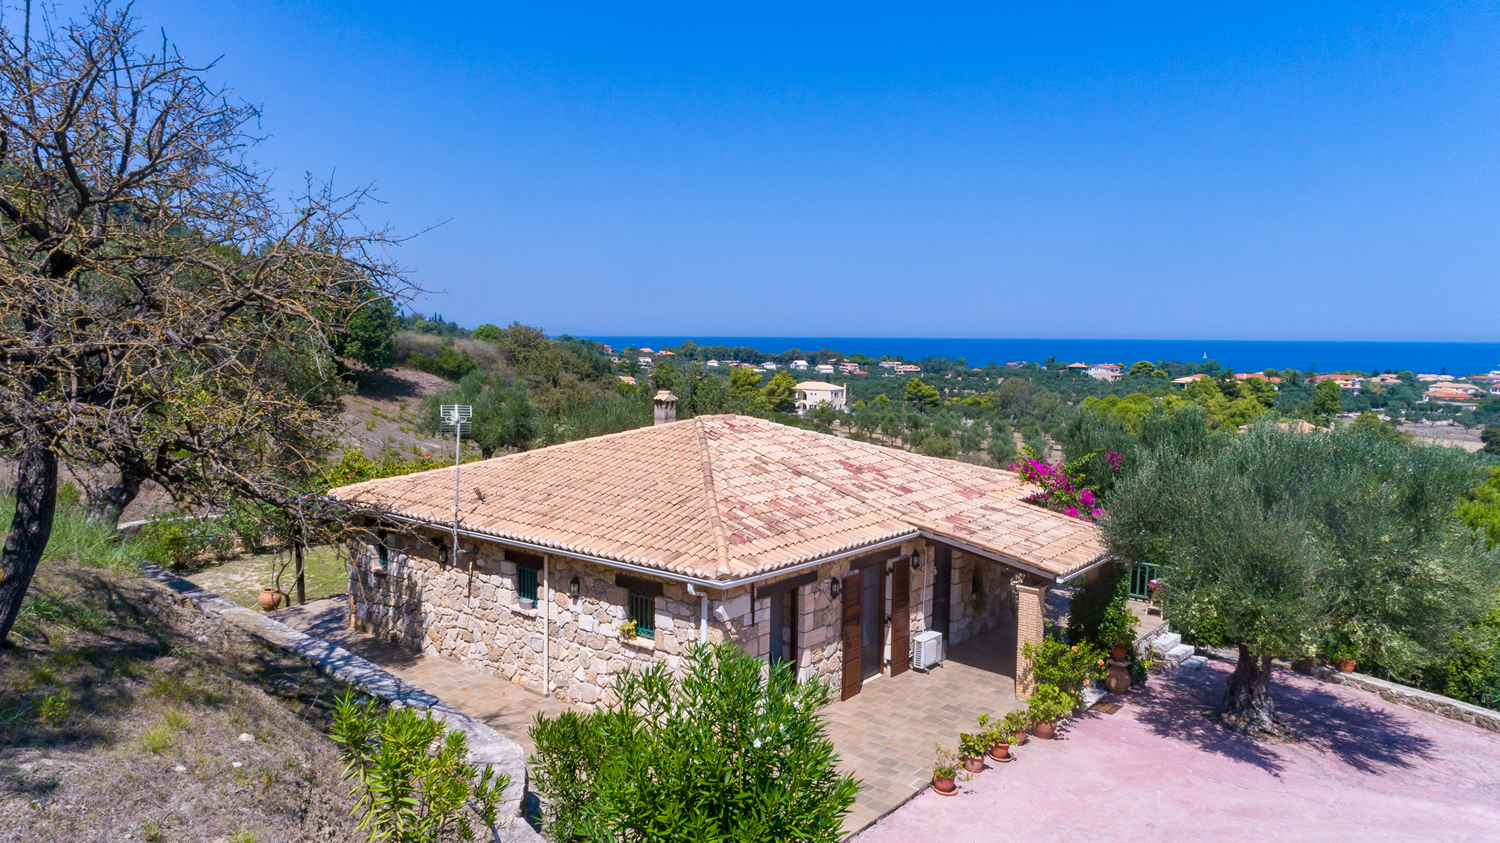 Villa Collina, traditional house in Vassilikos, close to Ionion beach, Zakynthos (Zante) island